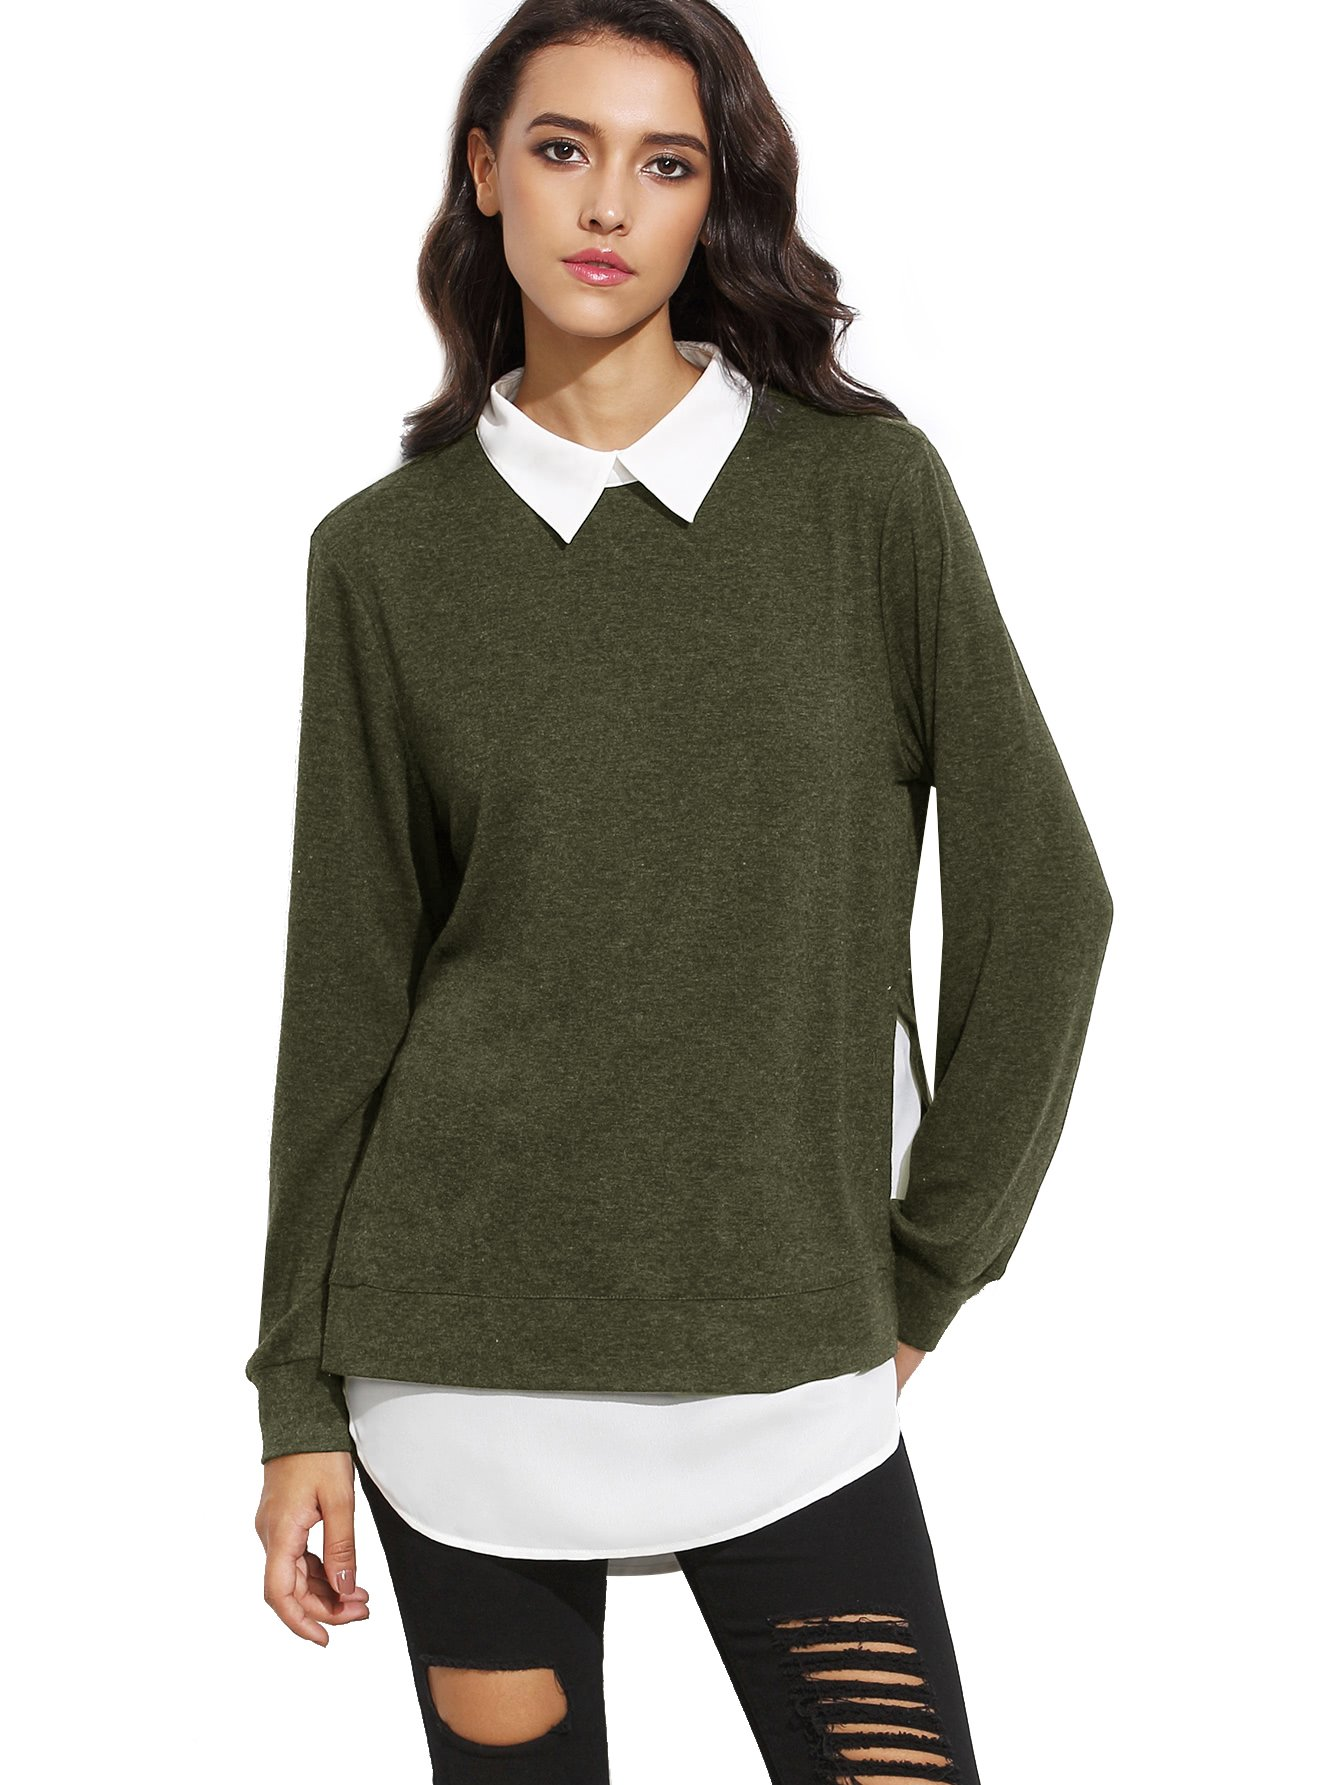 Romwe Women's Classic Collar Long Sleeve Curved Hem Pullover Sweatshirt Green M